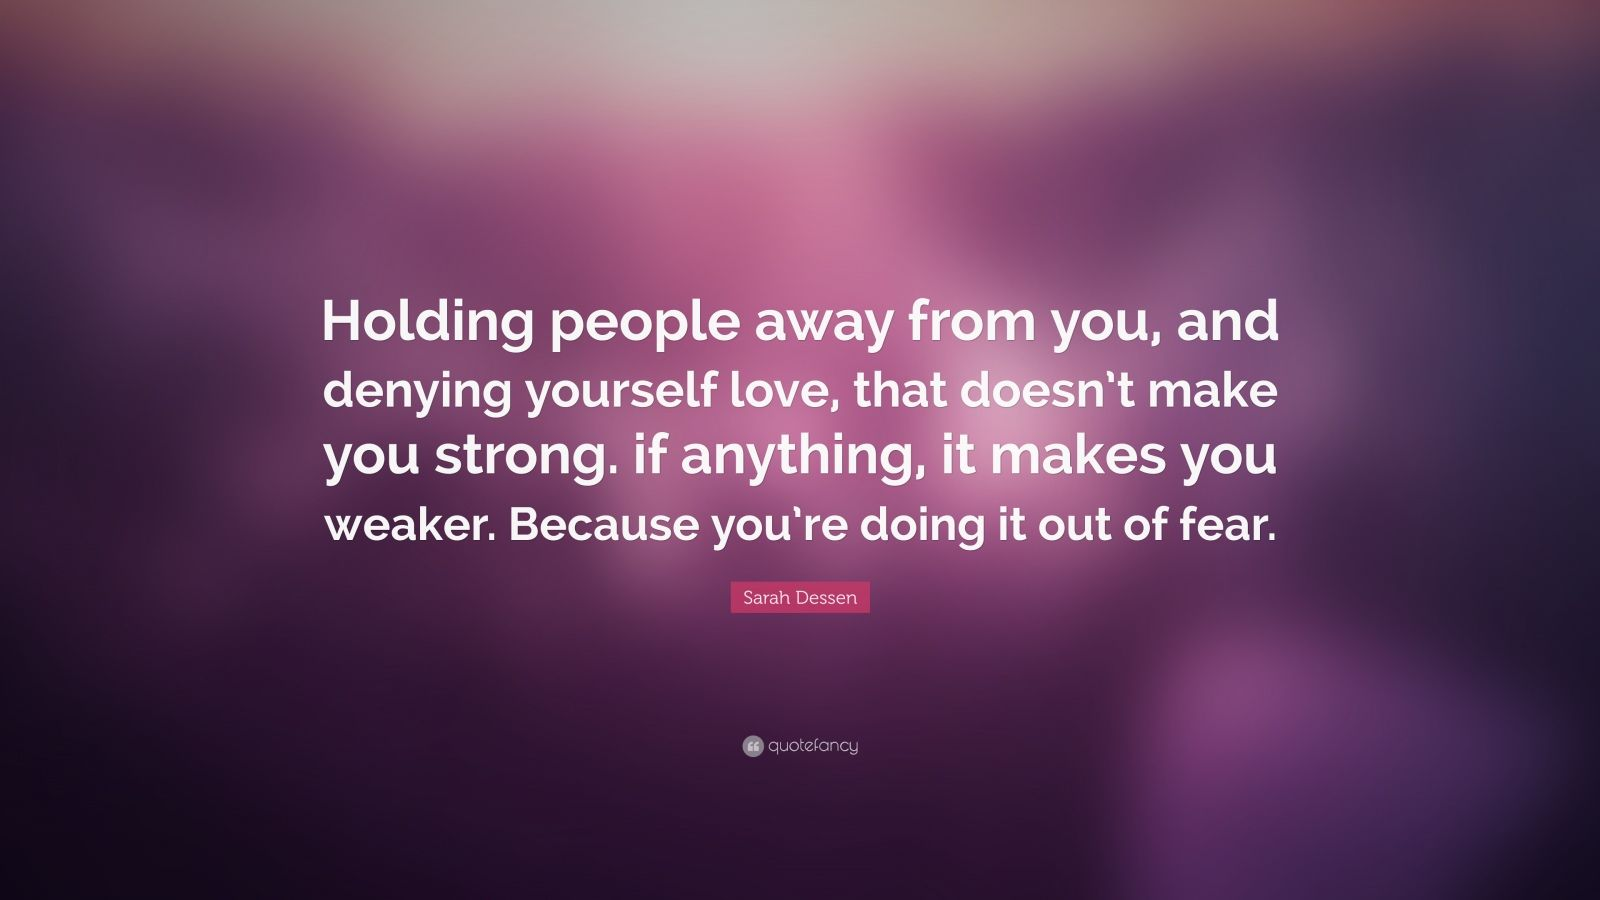 "Sarah Dessen Quote: ""Holding people away from you, and denying yourself love, that doesn't make you strong. if anything, it makes you weaker. Because you're doing it out of fear."""